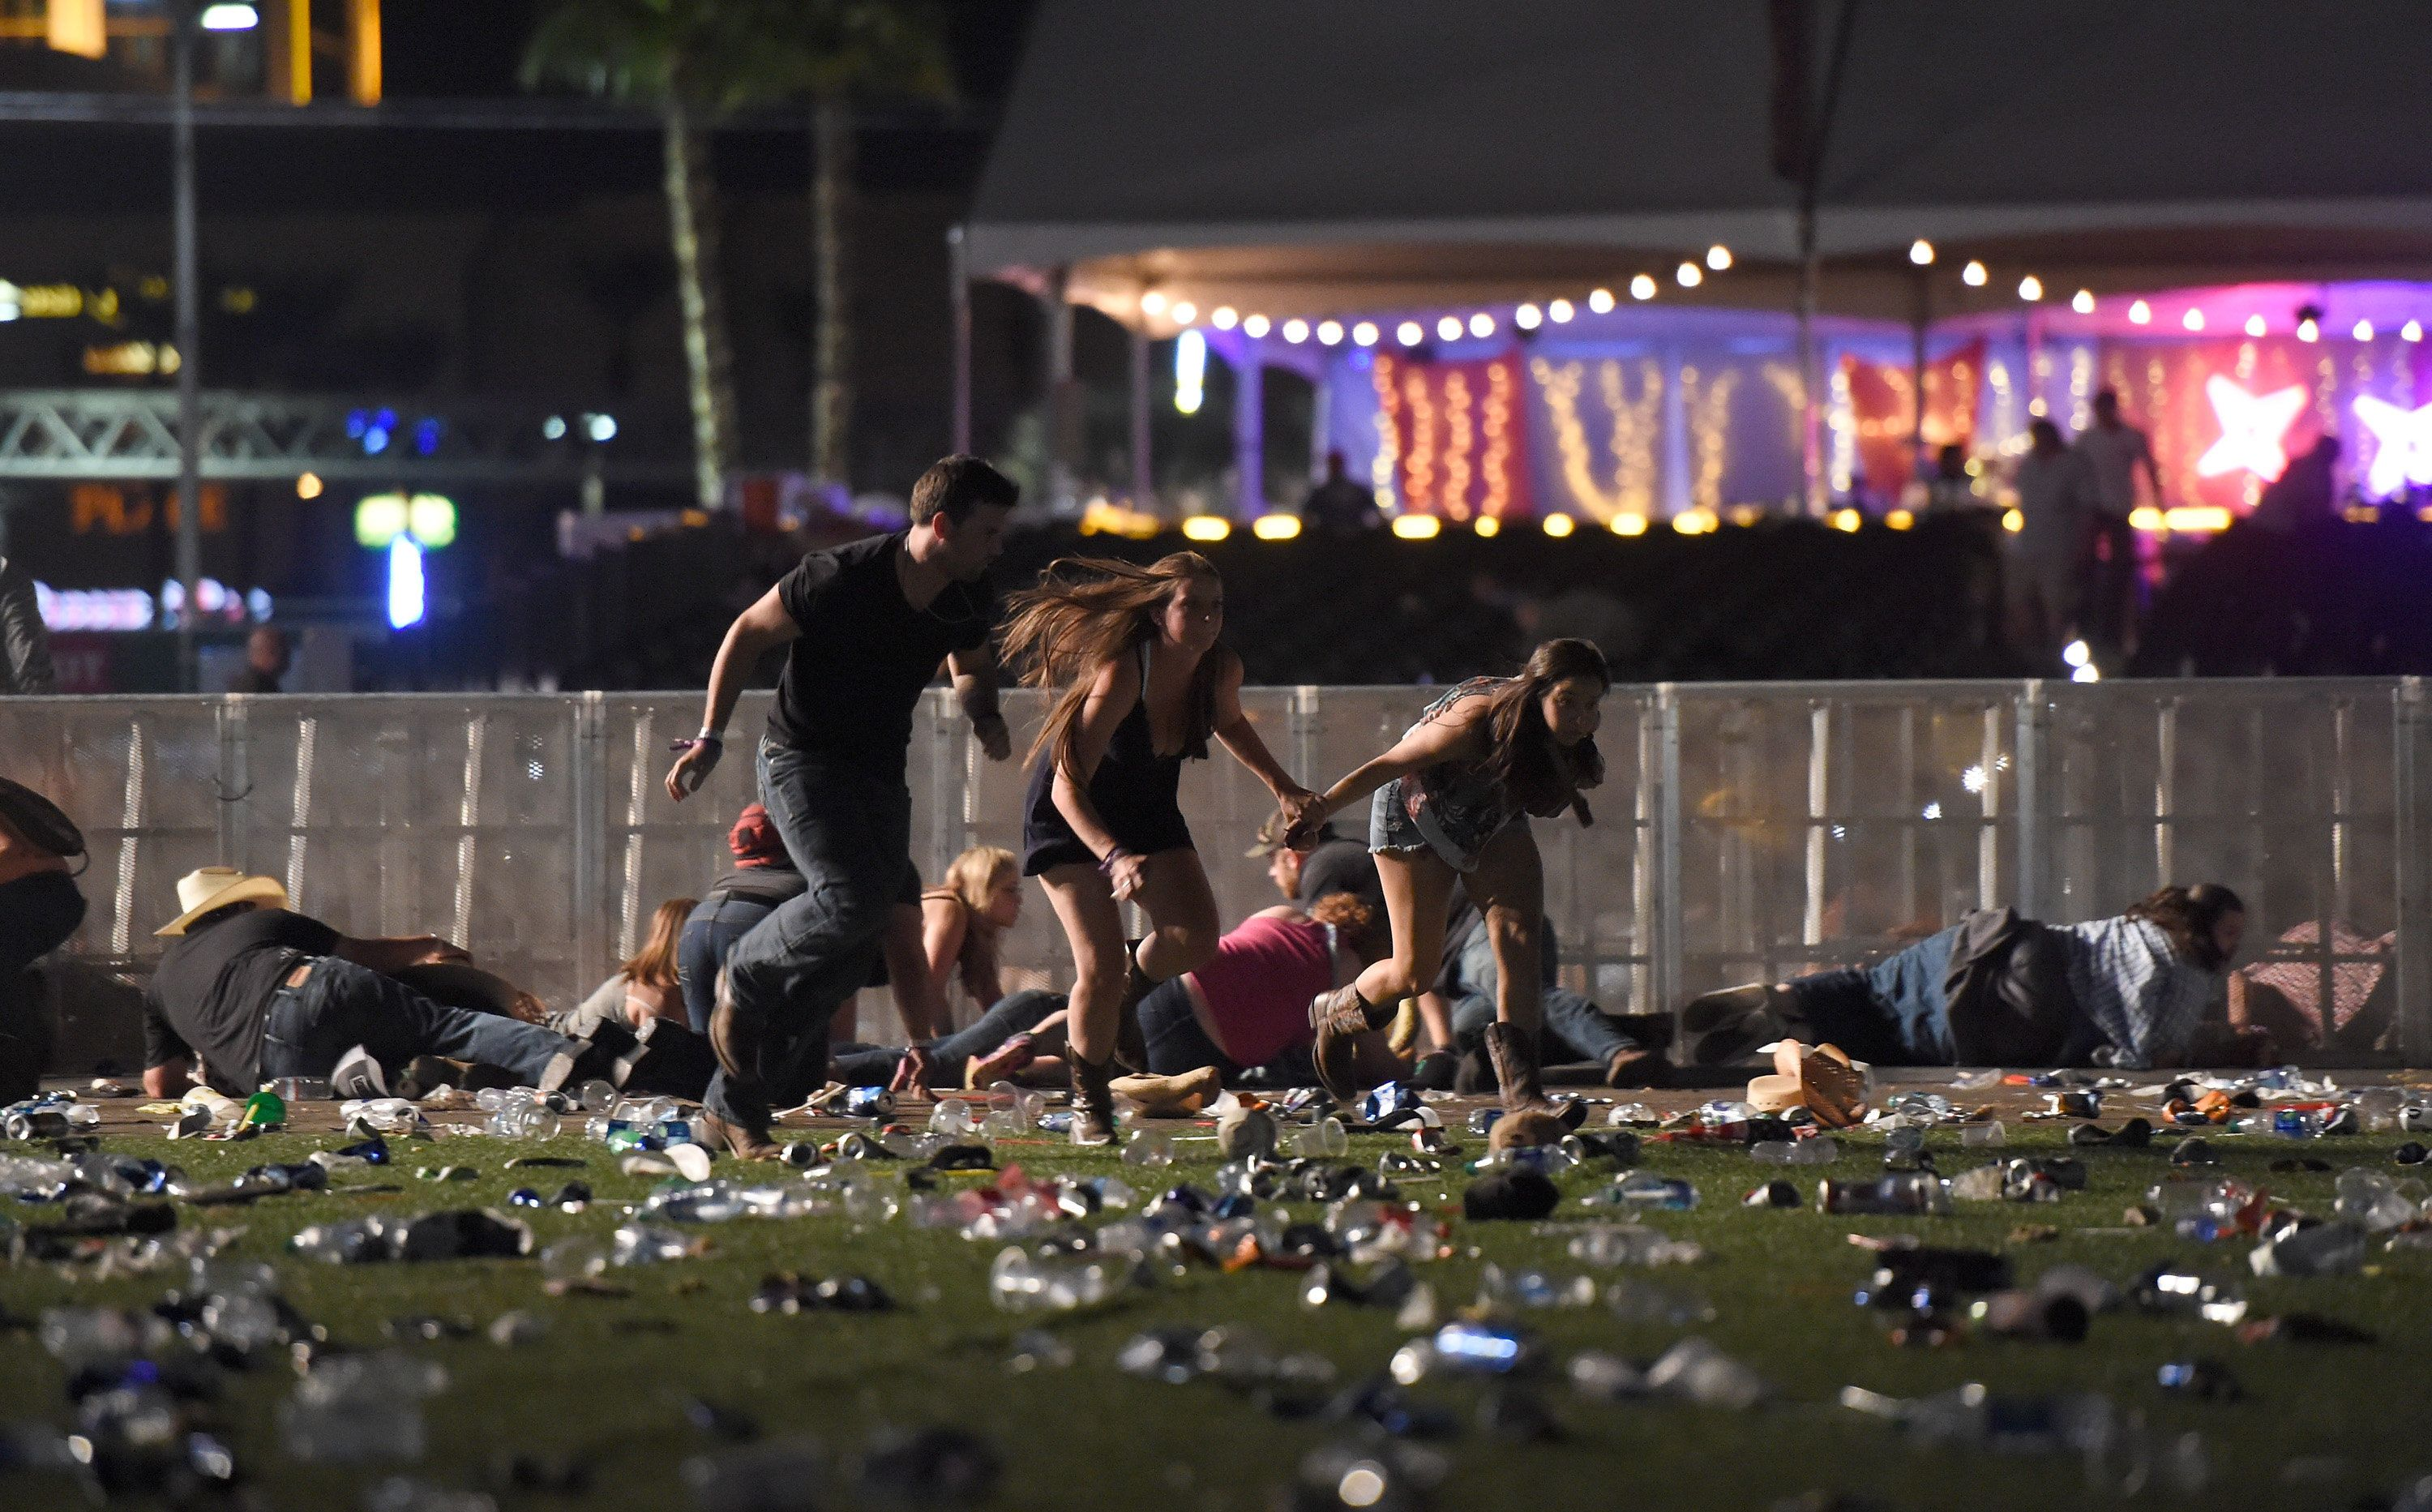 Vegas police don't rule out terrorism